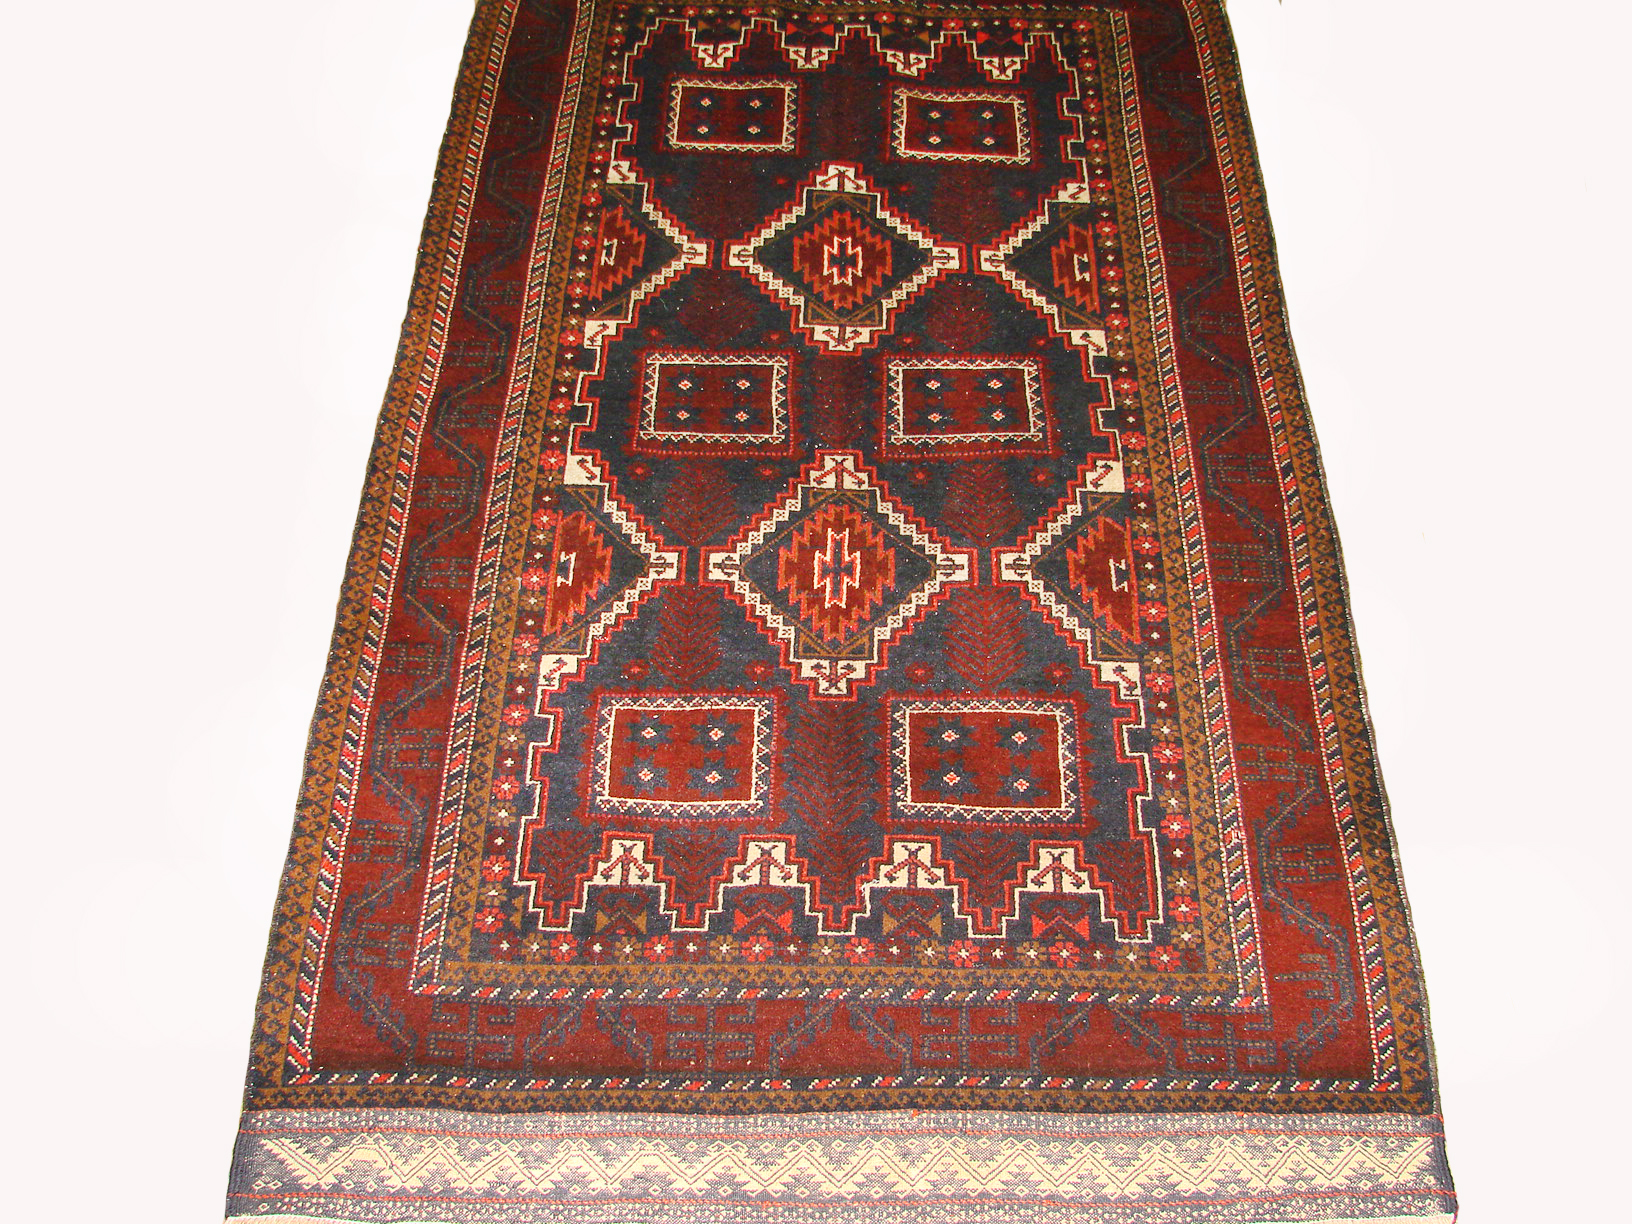 4x6 Kazak Hand Knotted Wool Area Rug - MR19454